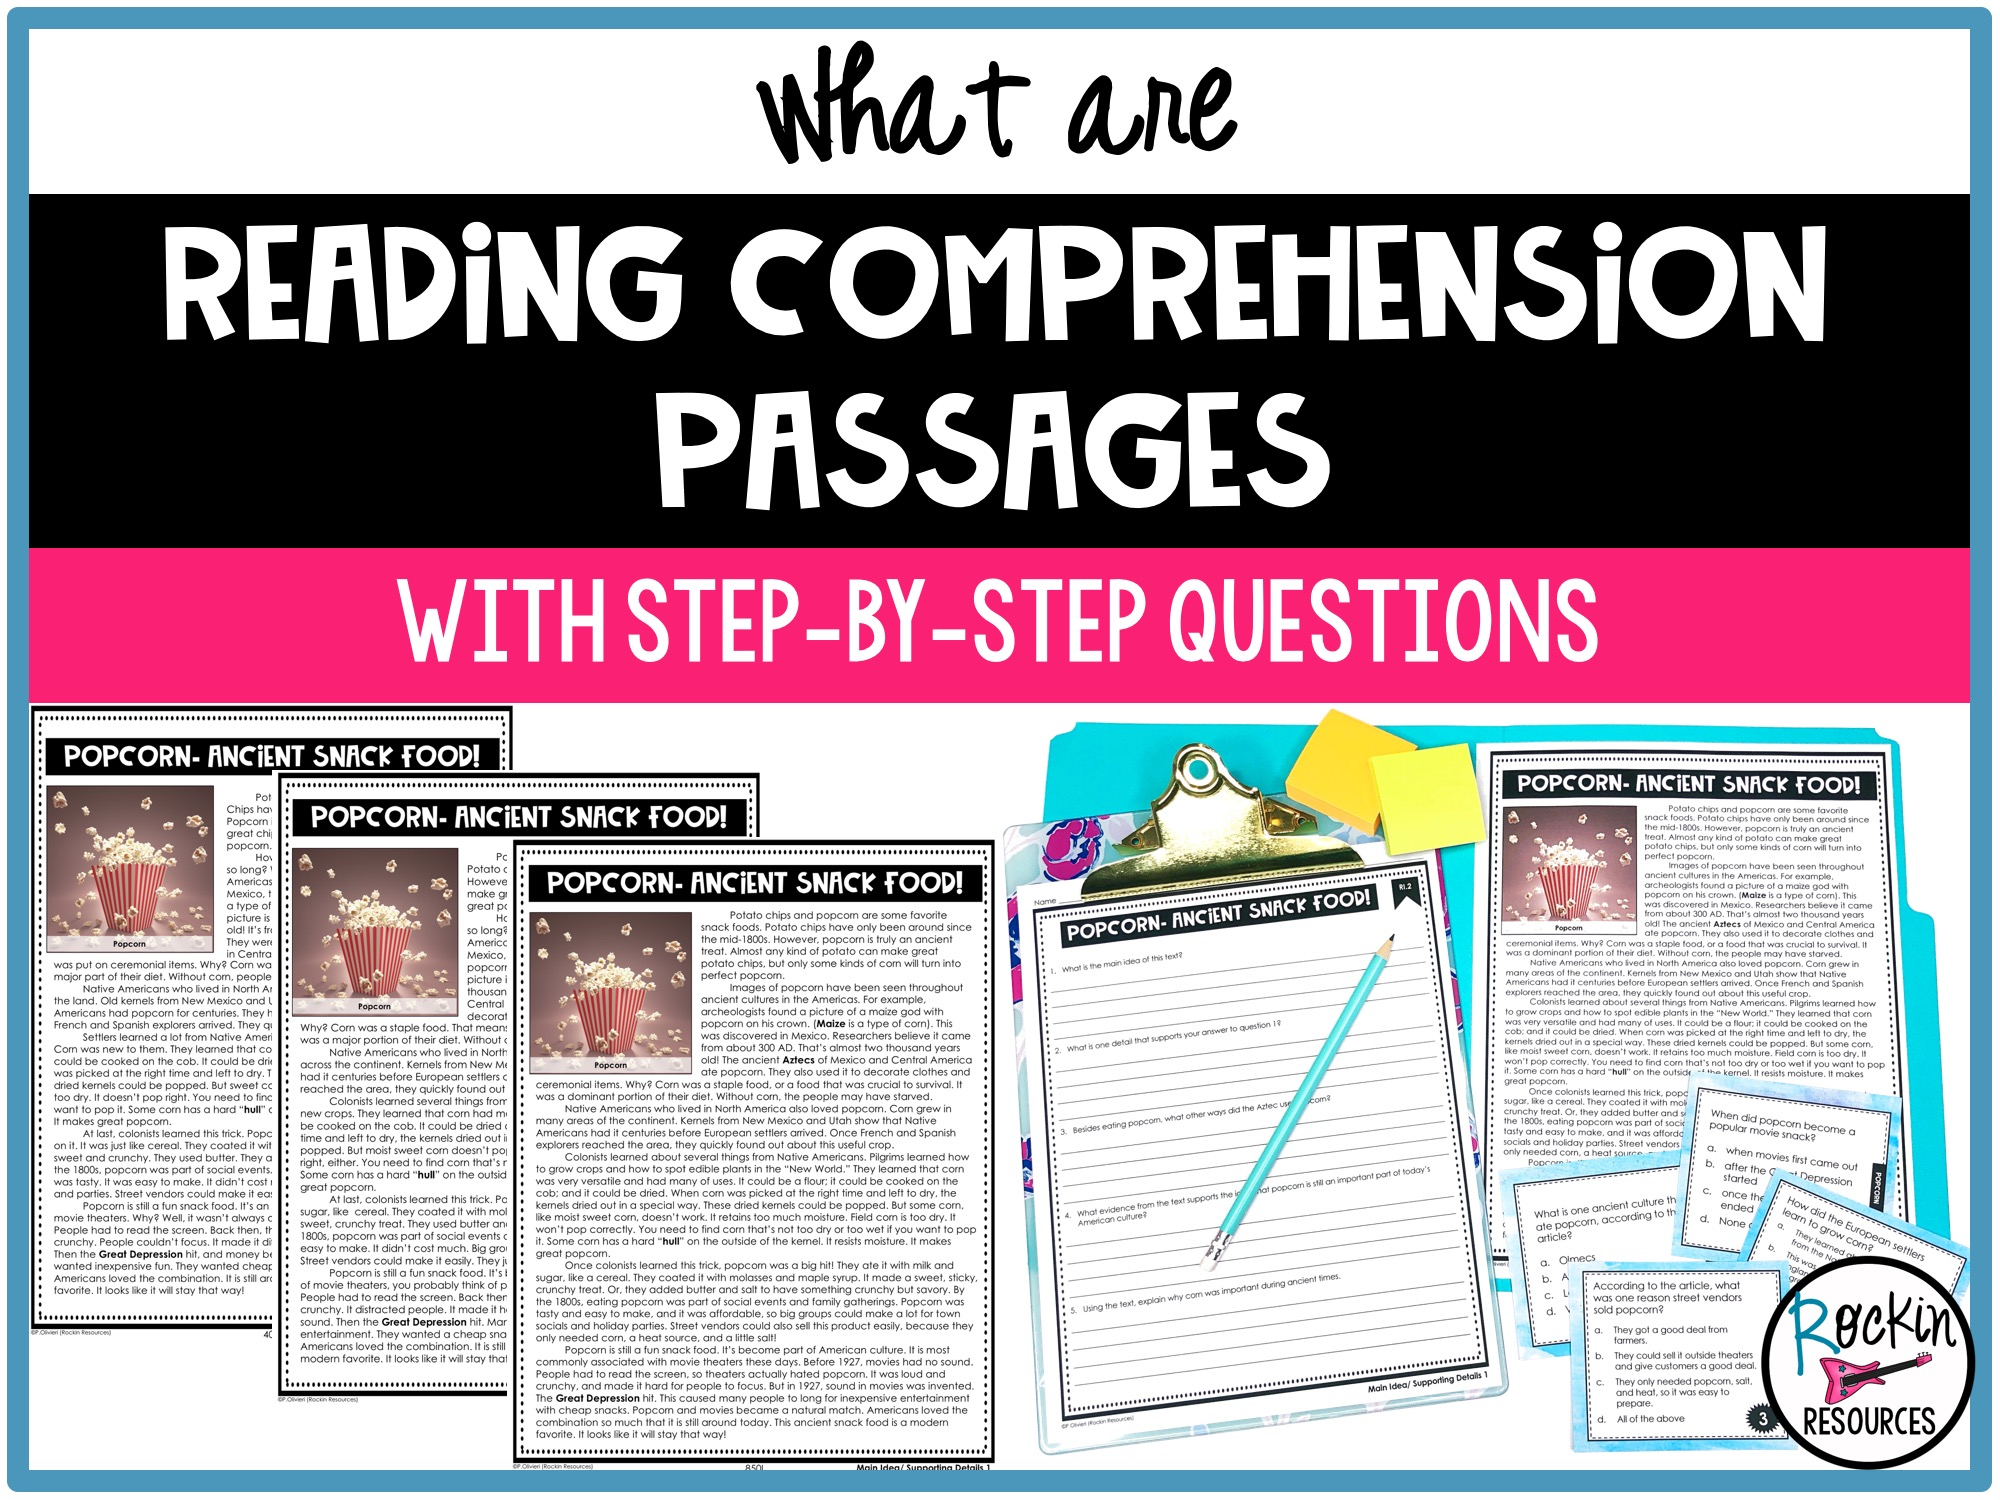 - What Are Reading Comprehension Passages With Step-by-Step